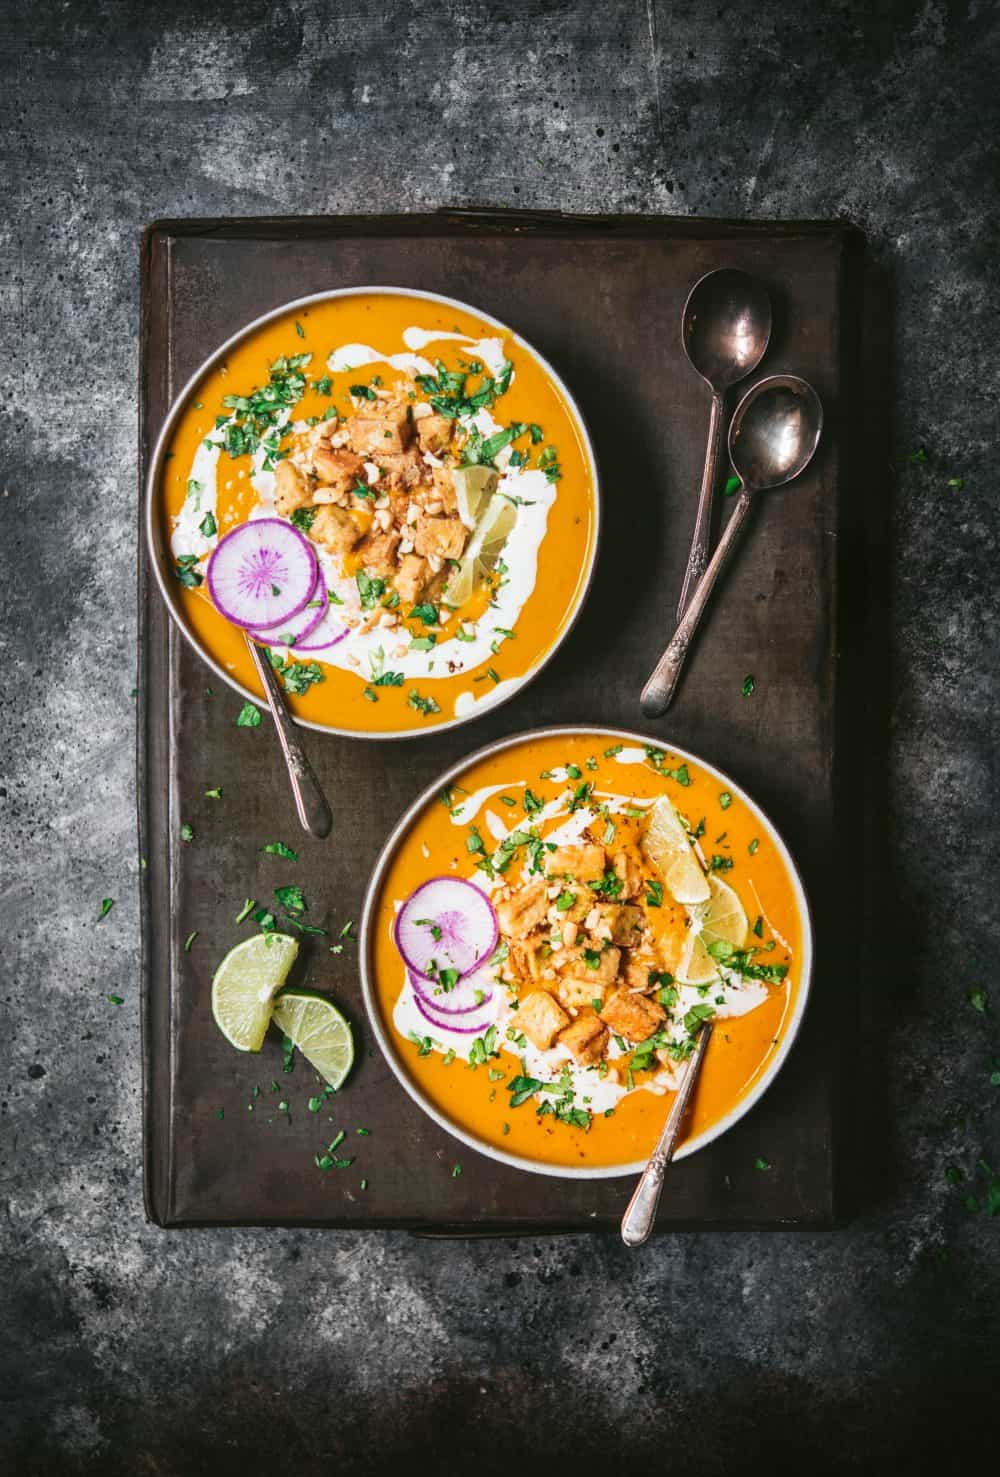 Overhead of two bowls of thai red curry pumpkin soup in black bowl garnished with crispy tofu, lime, fresh herbs and purple daikon radish